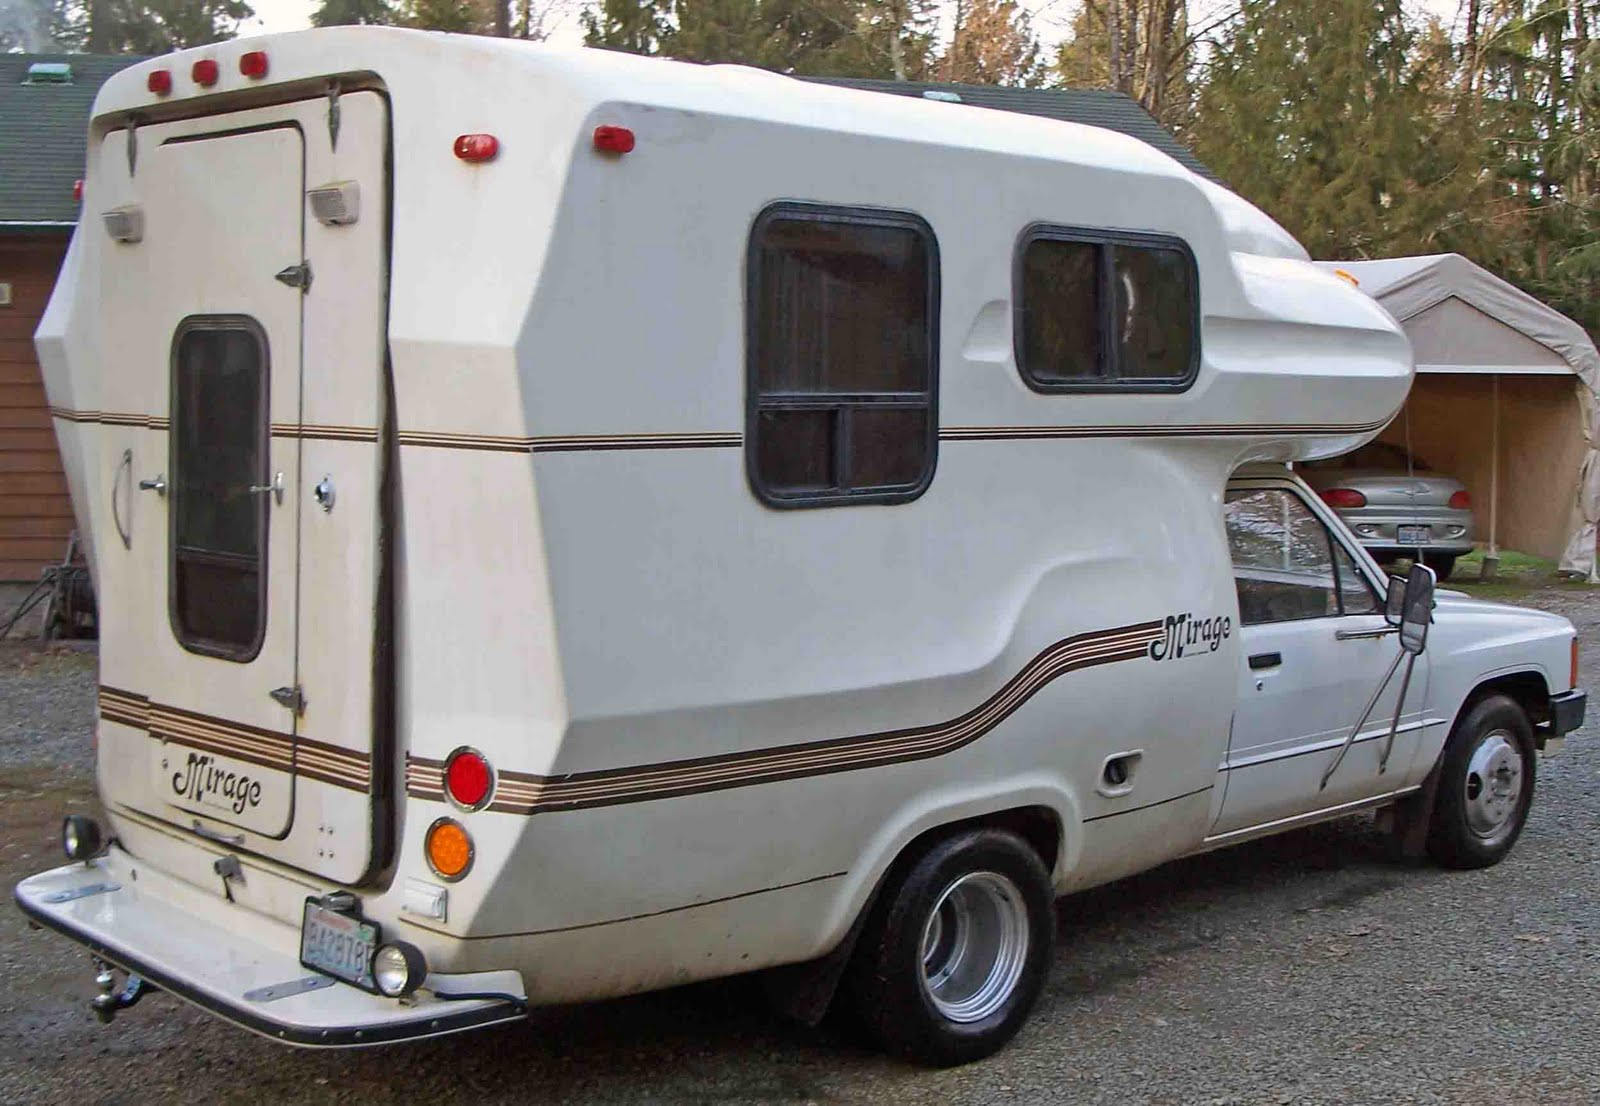 Used class c motorhomes for sale by owner for Used motor homes class c